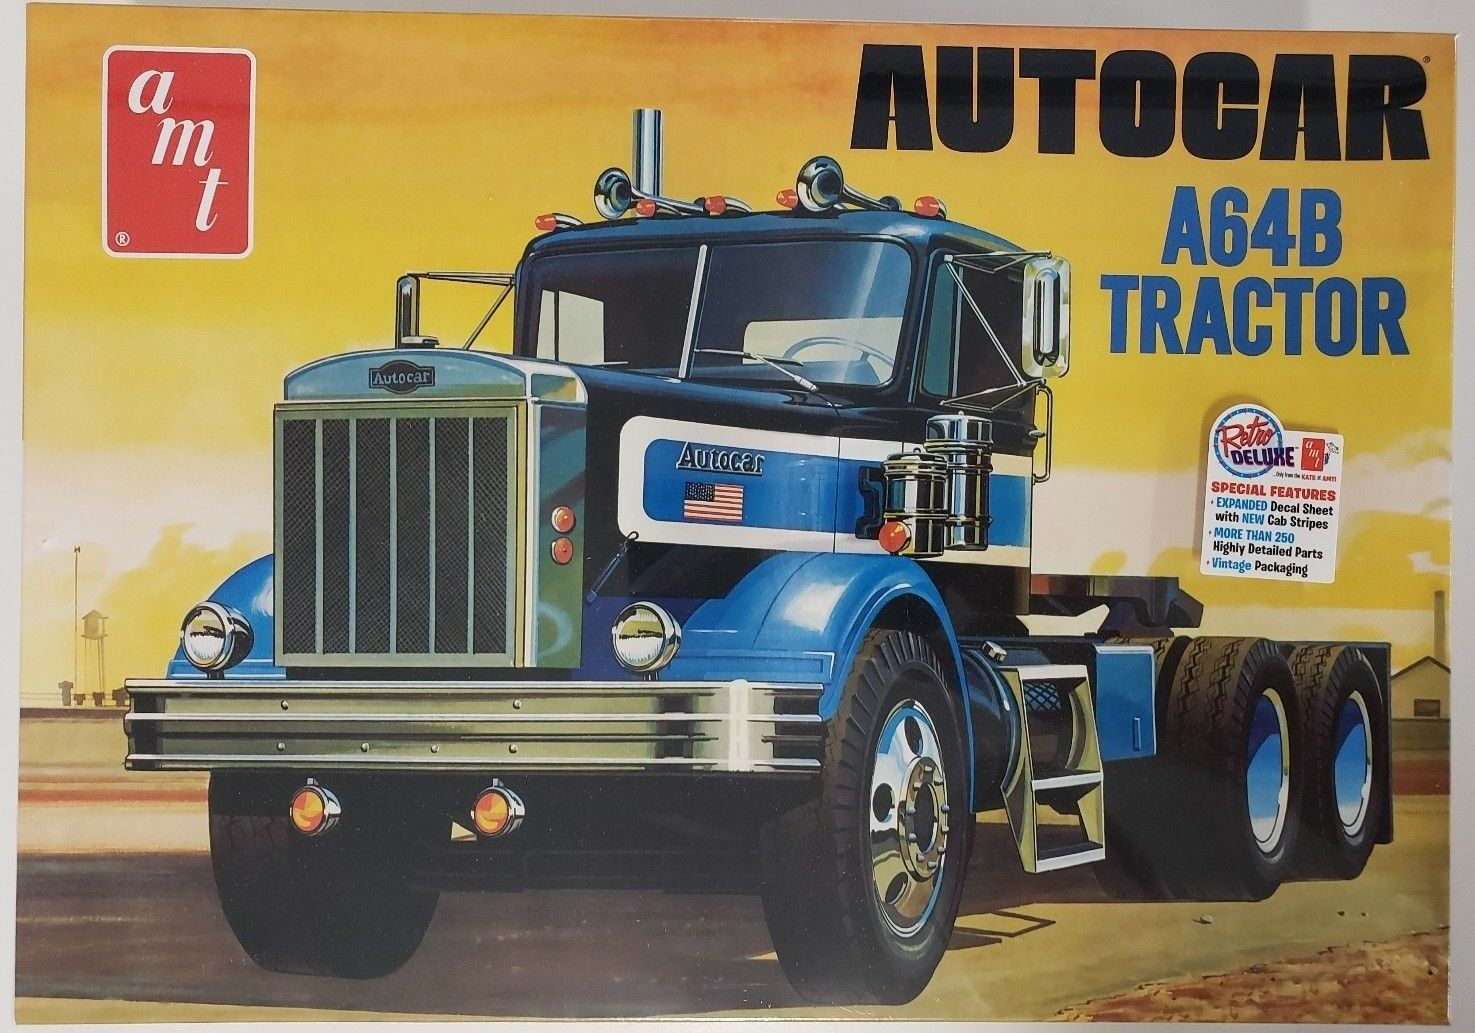 AMT1099 Autocar A64B Tractor 1 25 Scale Plastic Scale Model Kit